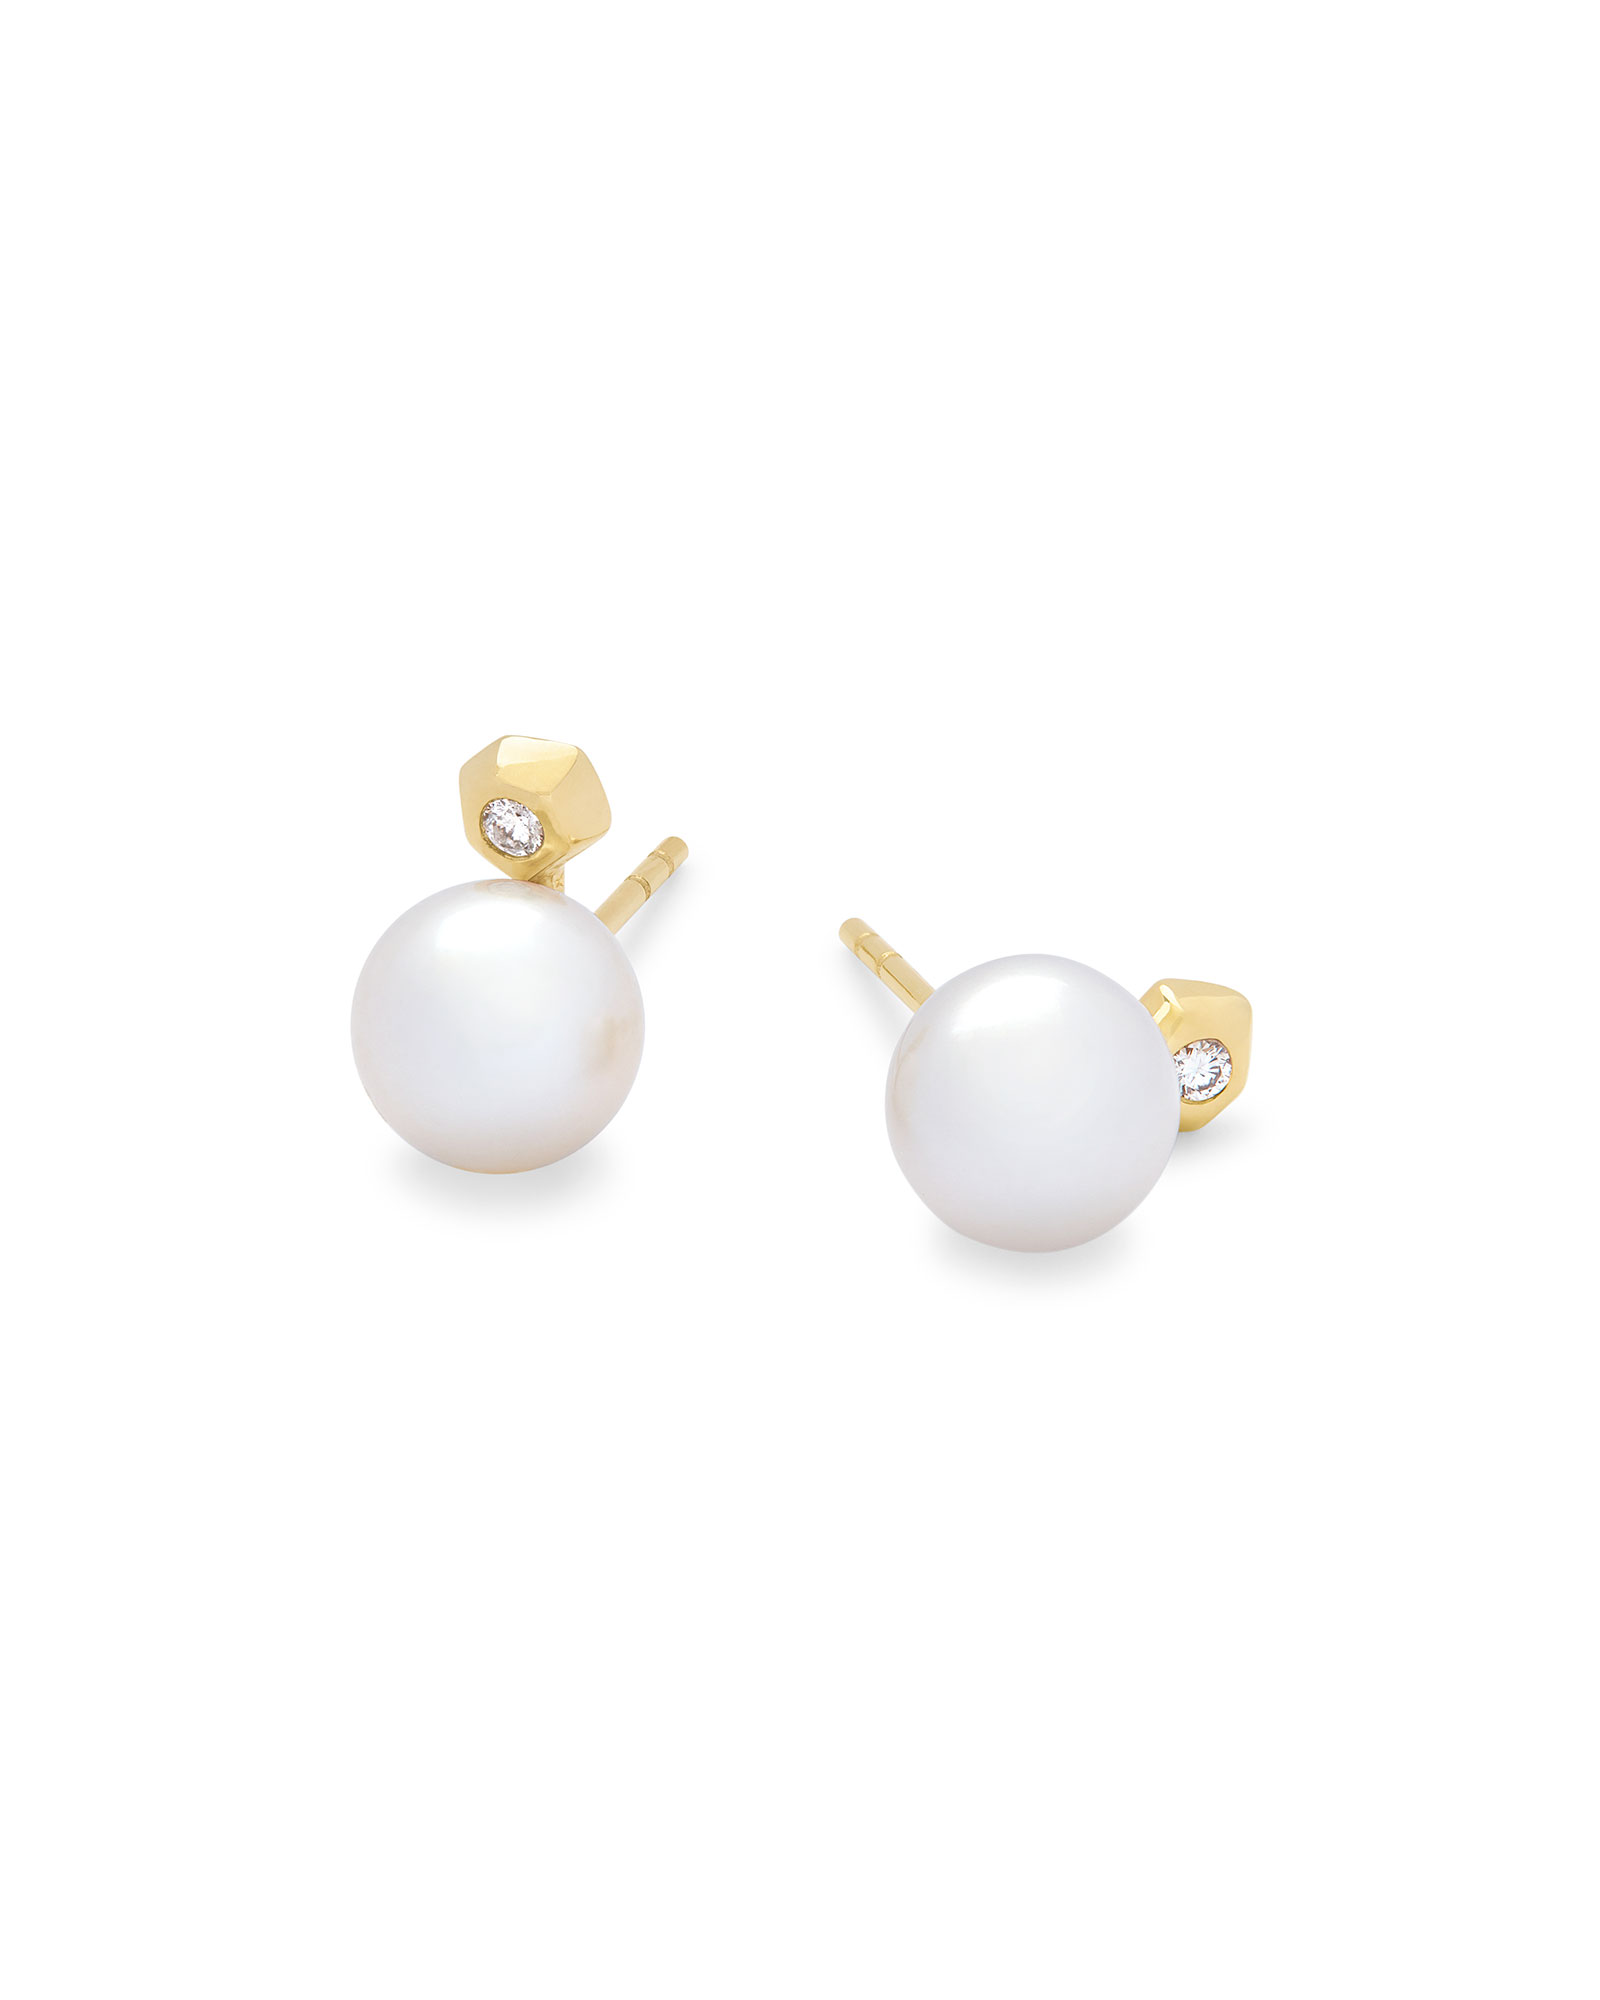 Cathleen 14k Yellow Gold Stud Earrings